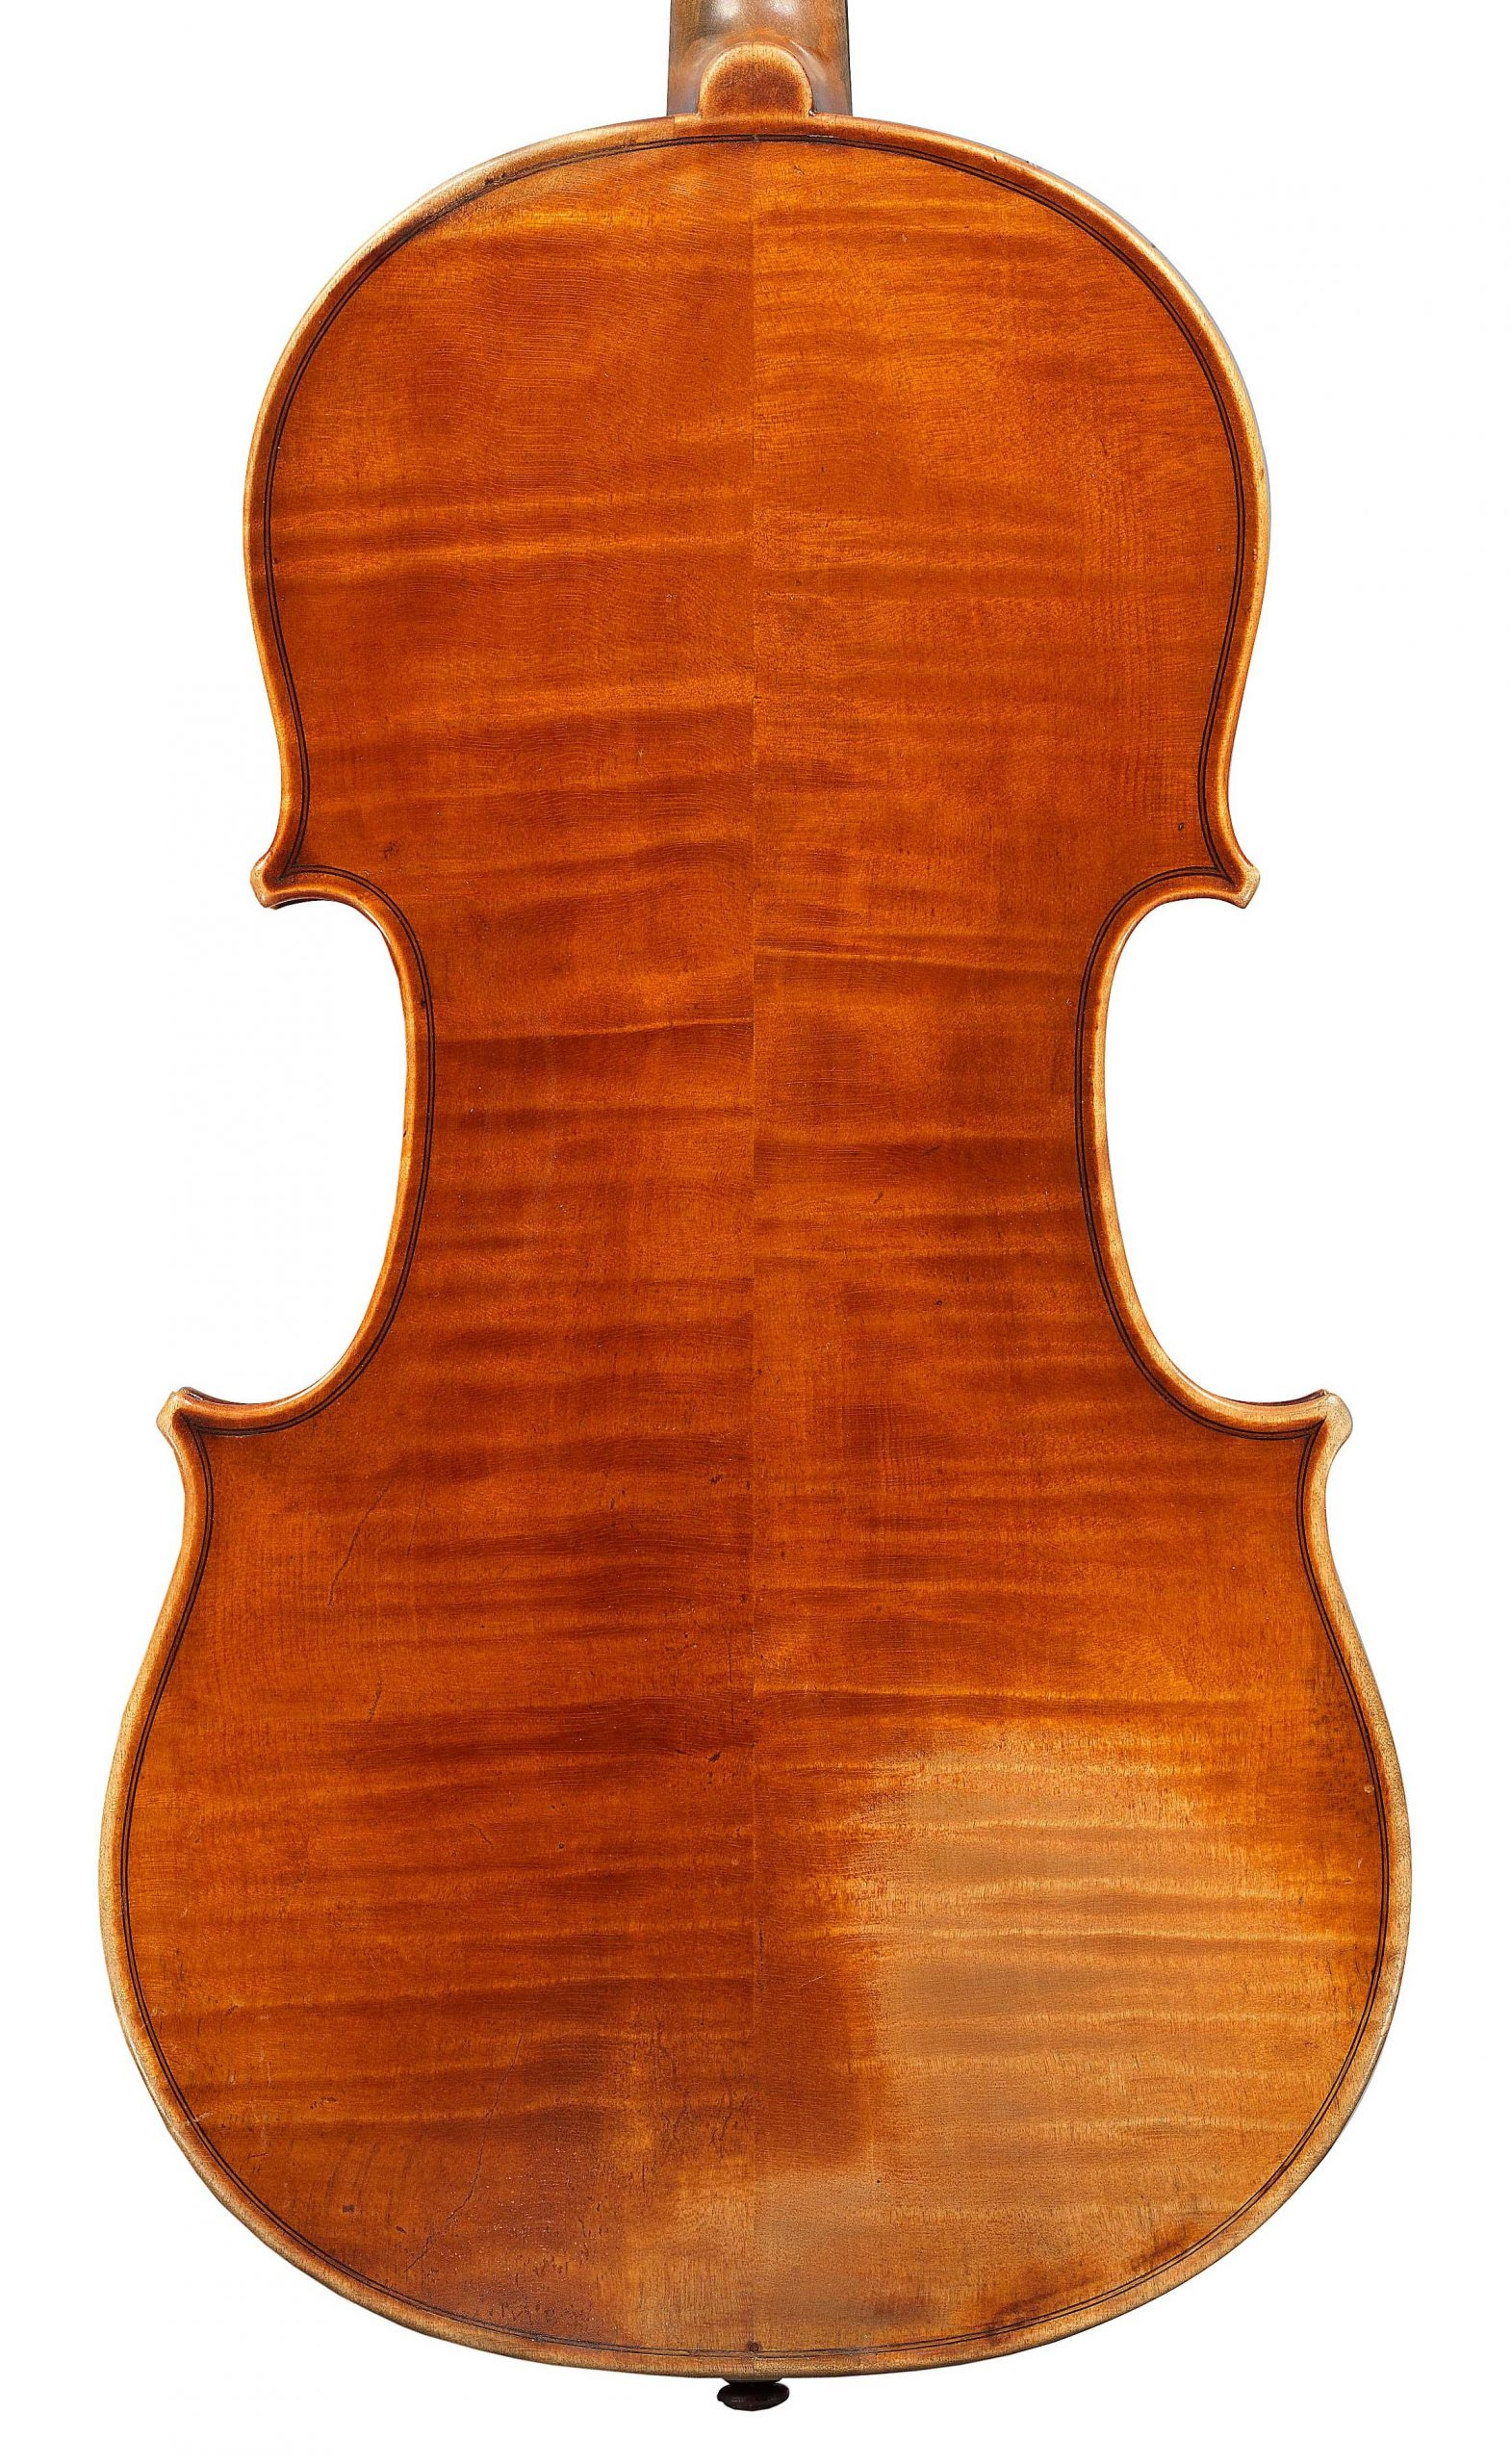 Back of viola by JB Vuillaume, dated 1863, exhibited by Ingles & Hayday at Sotheby's in 2012